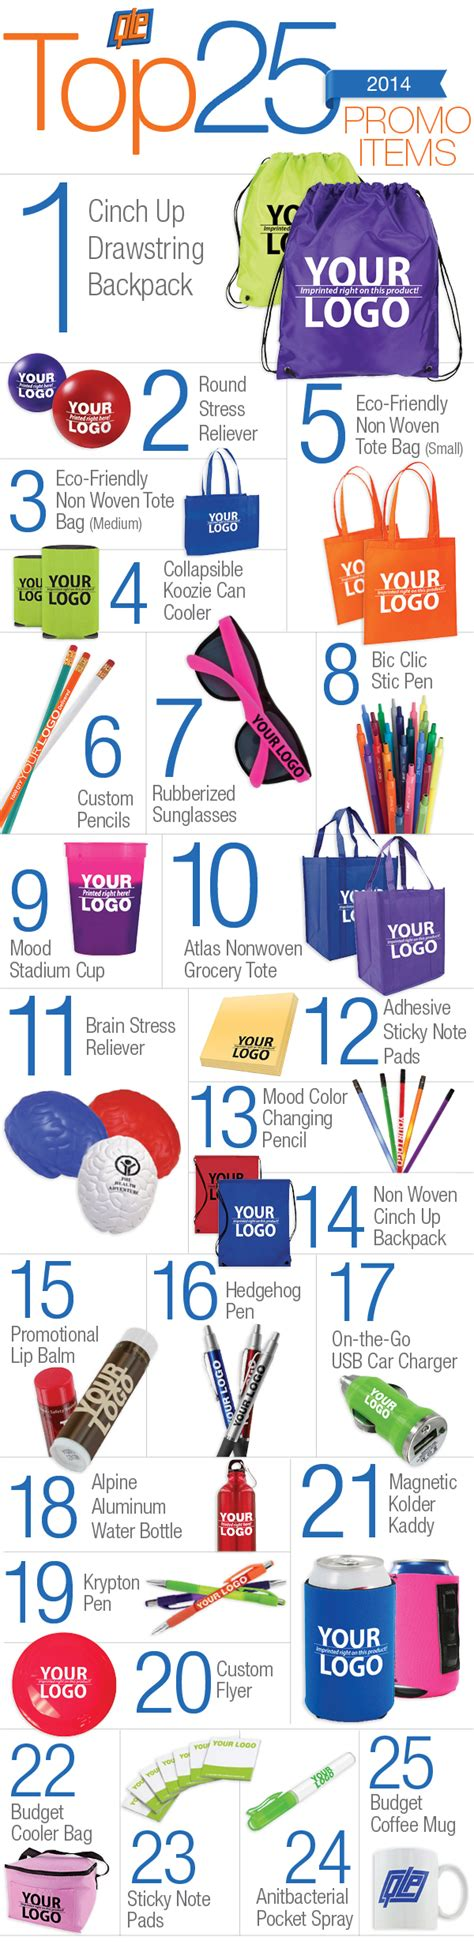 whats popular in 2014 25 most popular promotional products of 2014